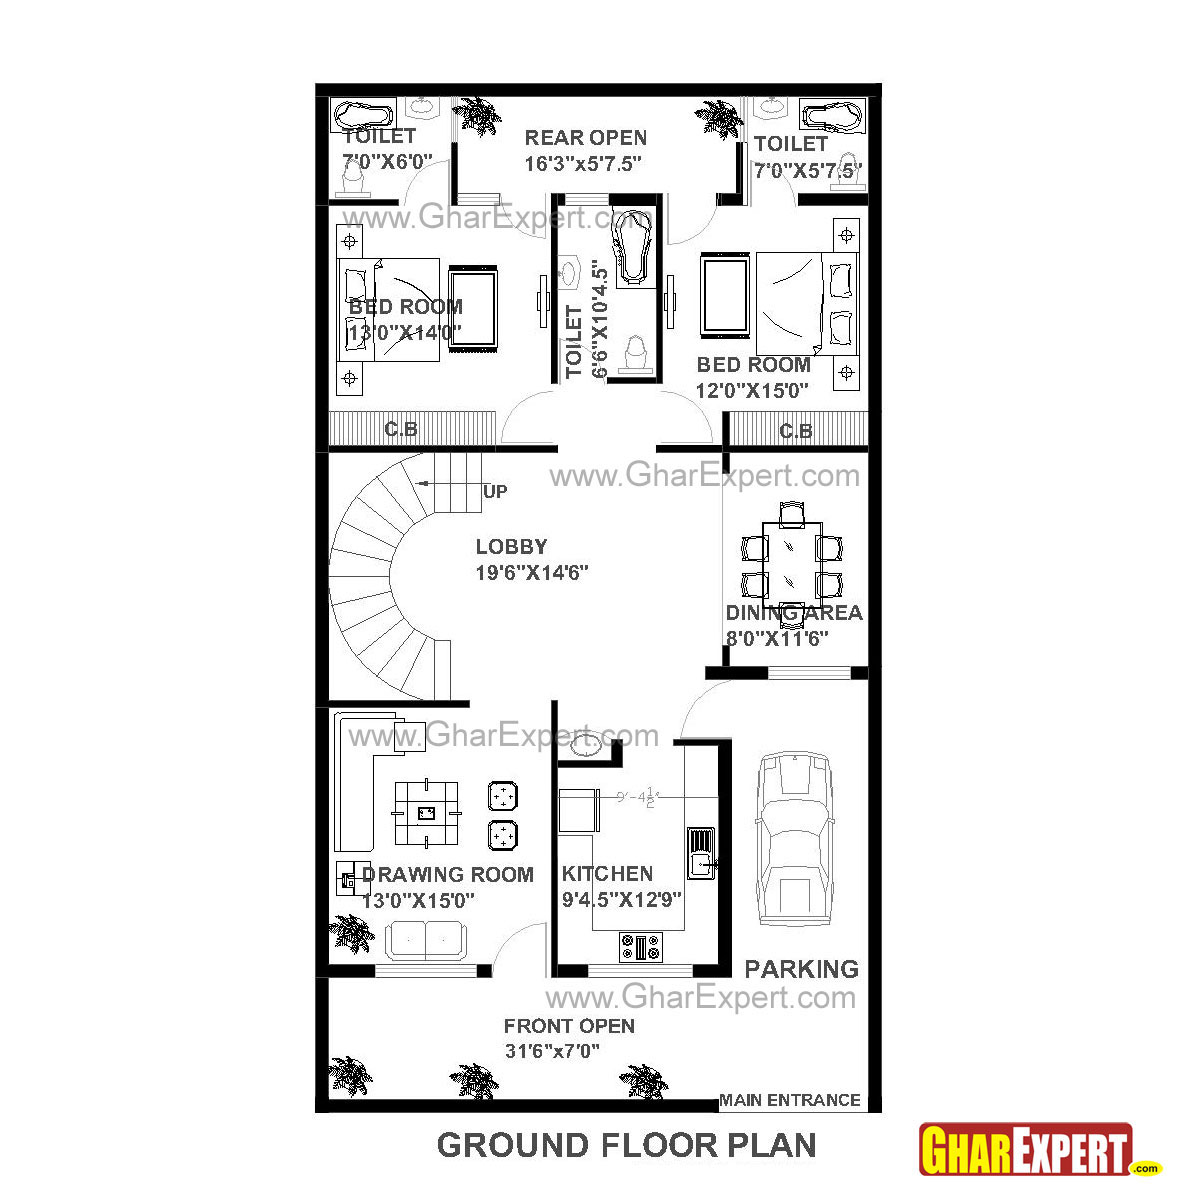 Plan Plan Of 30 Feet By 60 Feet Plot 1800 Squre Feet Built Area On 200 Yards Plot Plan Code 1303 on Floor Plans 1700 Square Feet 3 Bedroom